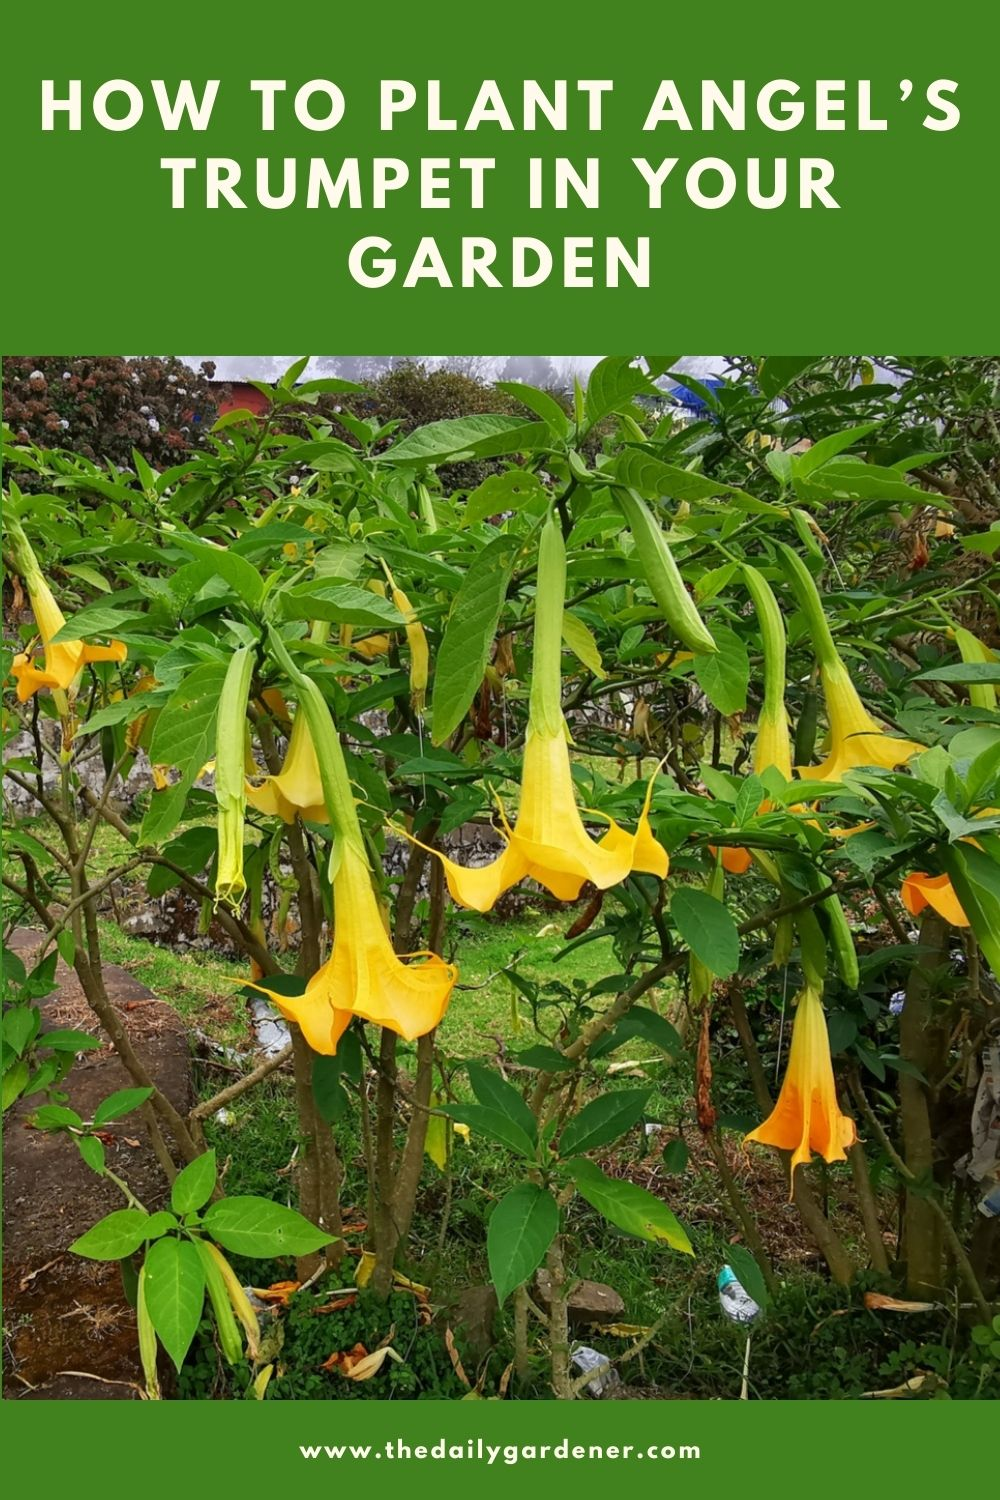 How to Plant Angel's Trumpet in Your Garden (Tricks to Care!) 2